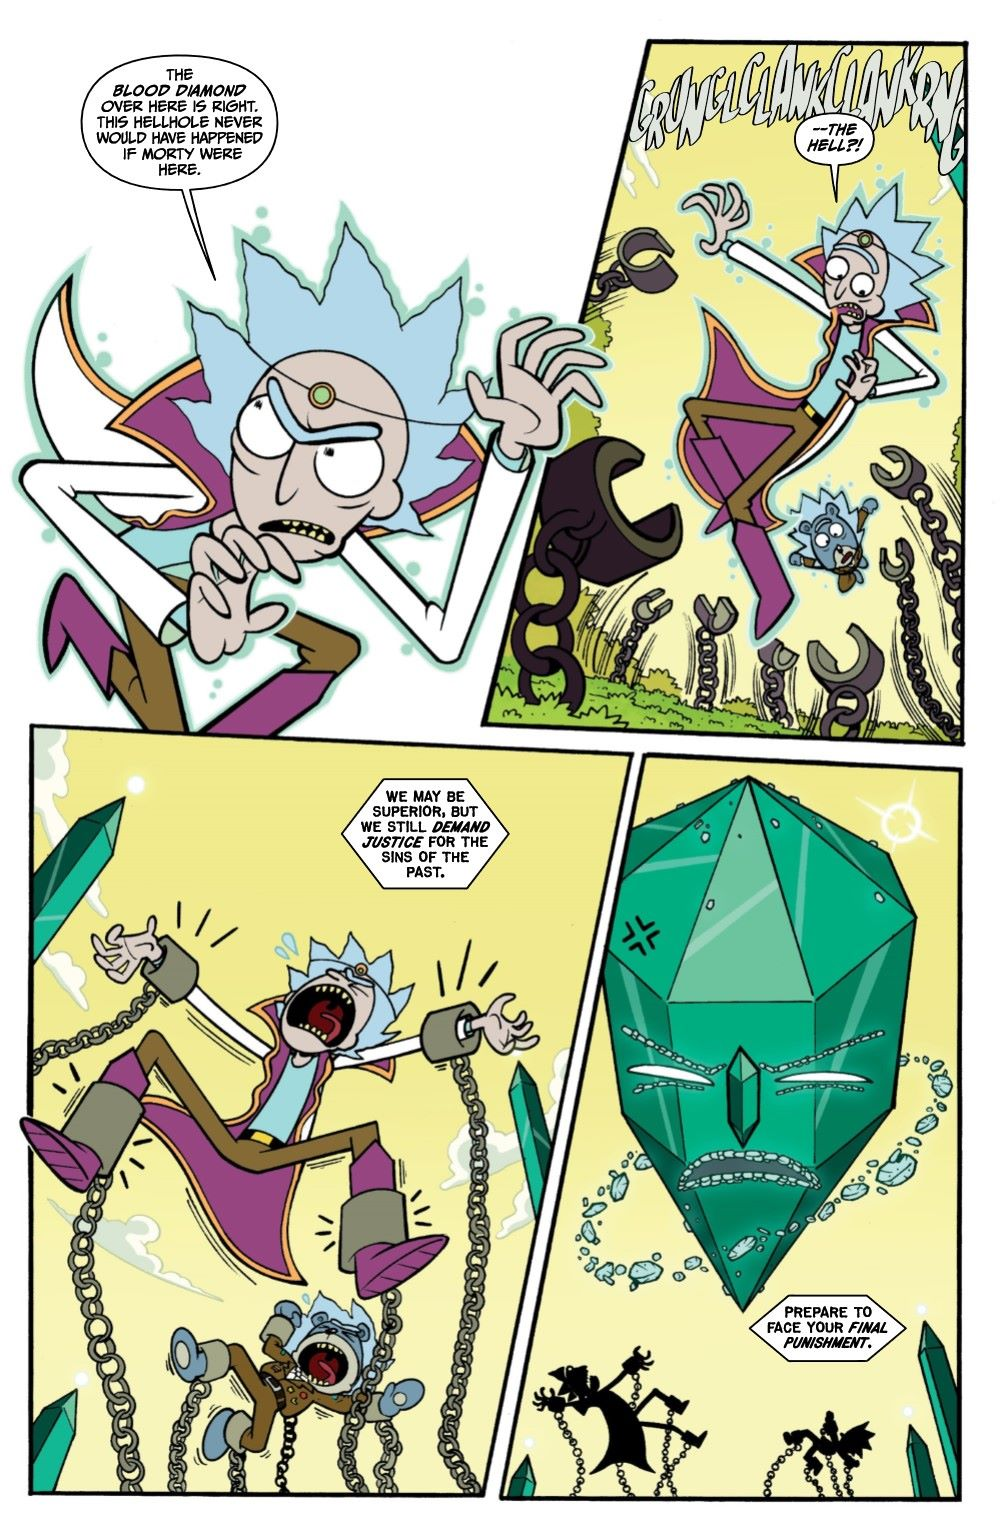 RICKMORTY-WORLDSAPART-4-REFERENCE-06 ComicList Previews: RICK AND MORTY WORLDS APART #4